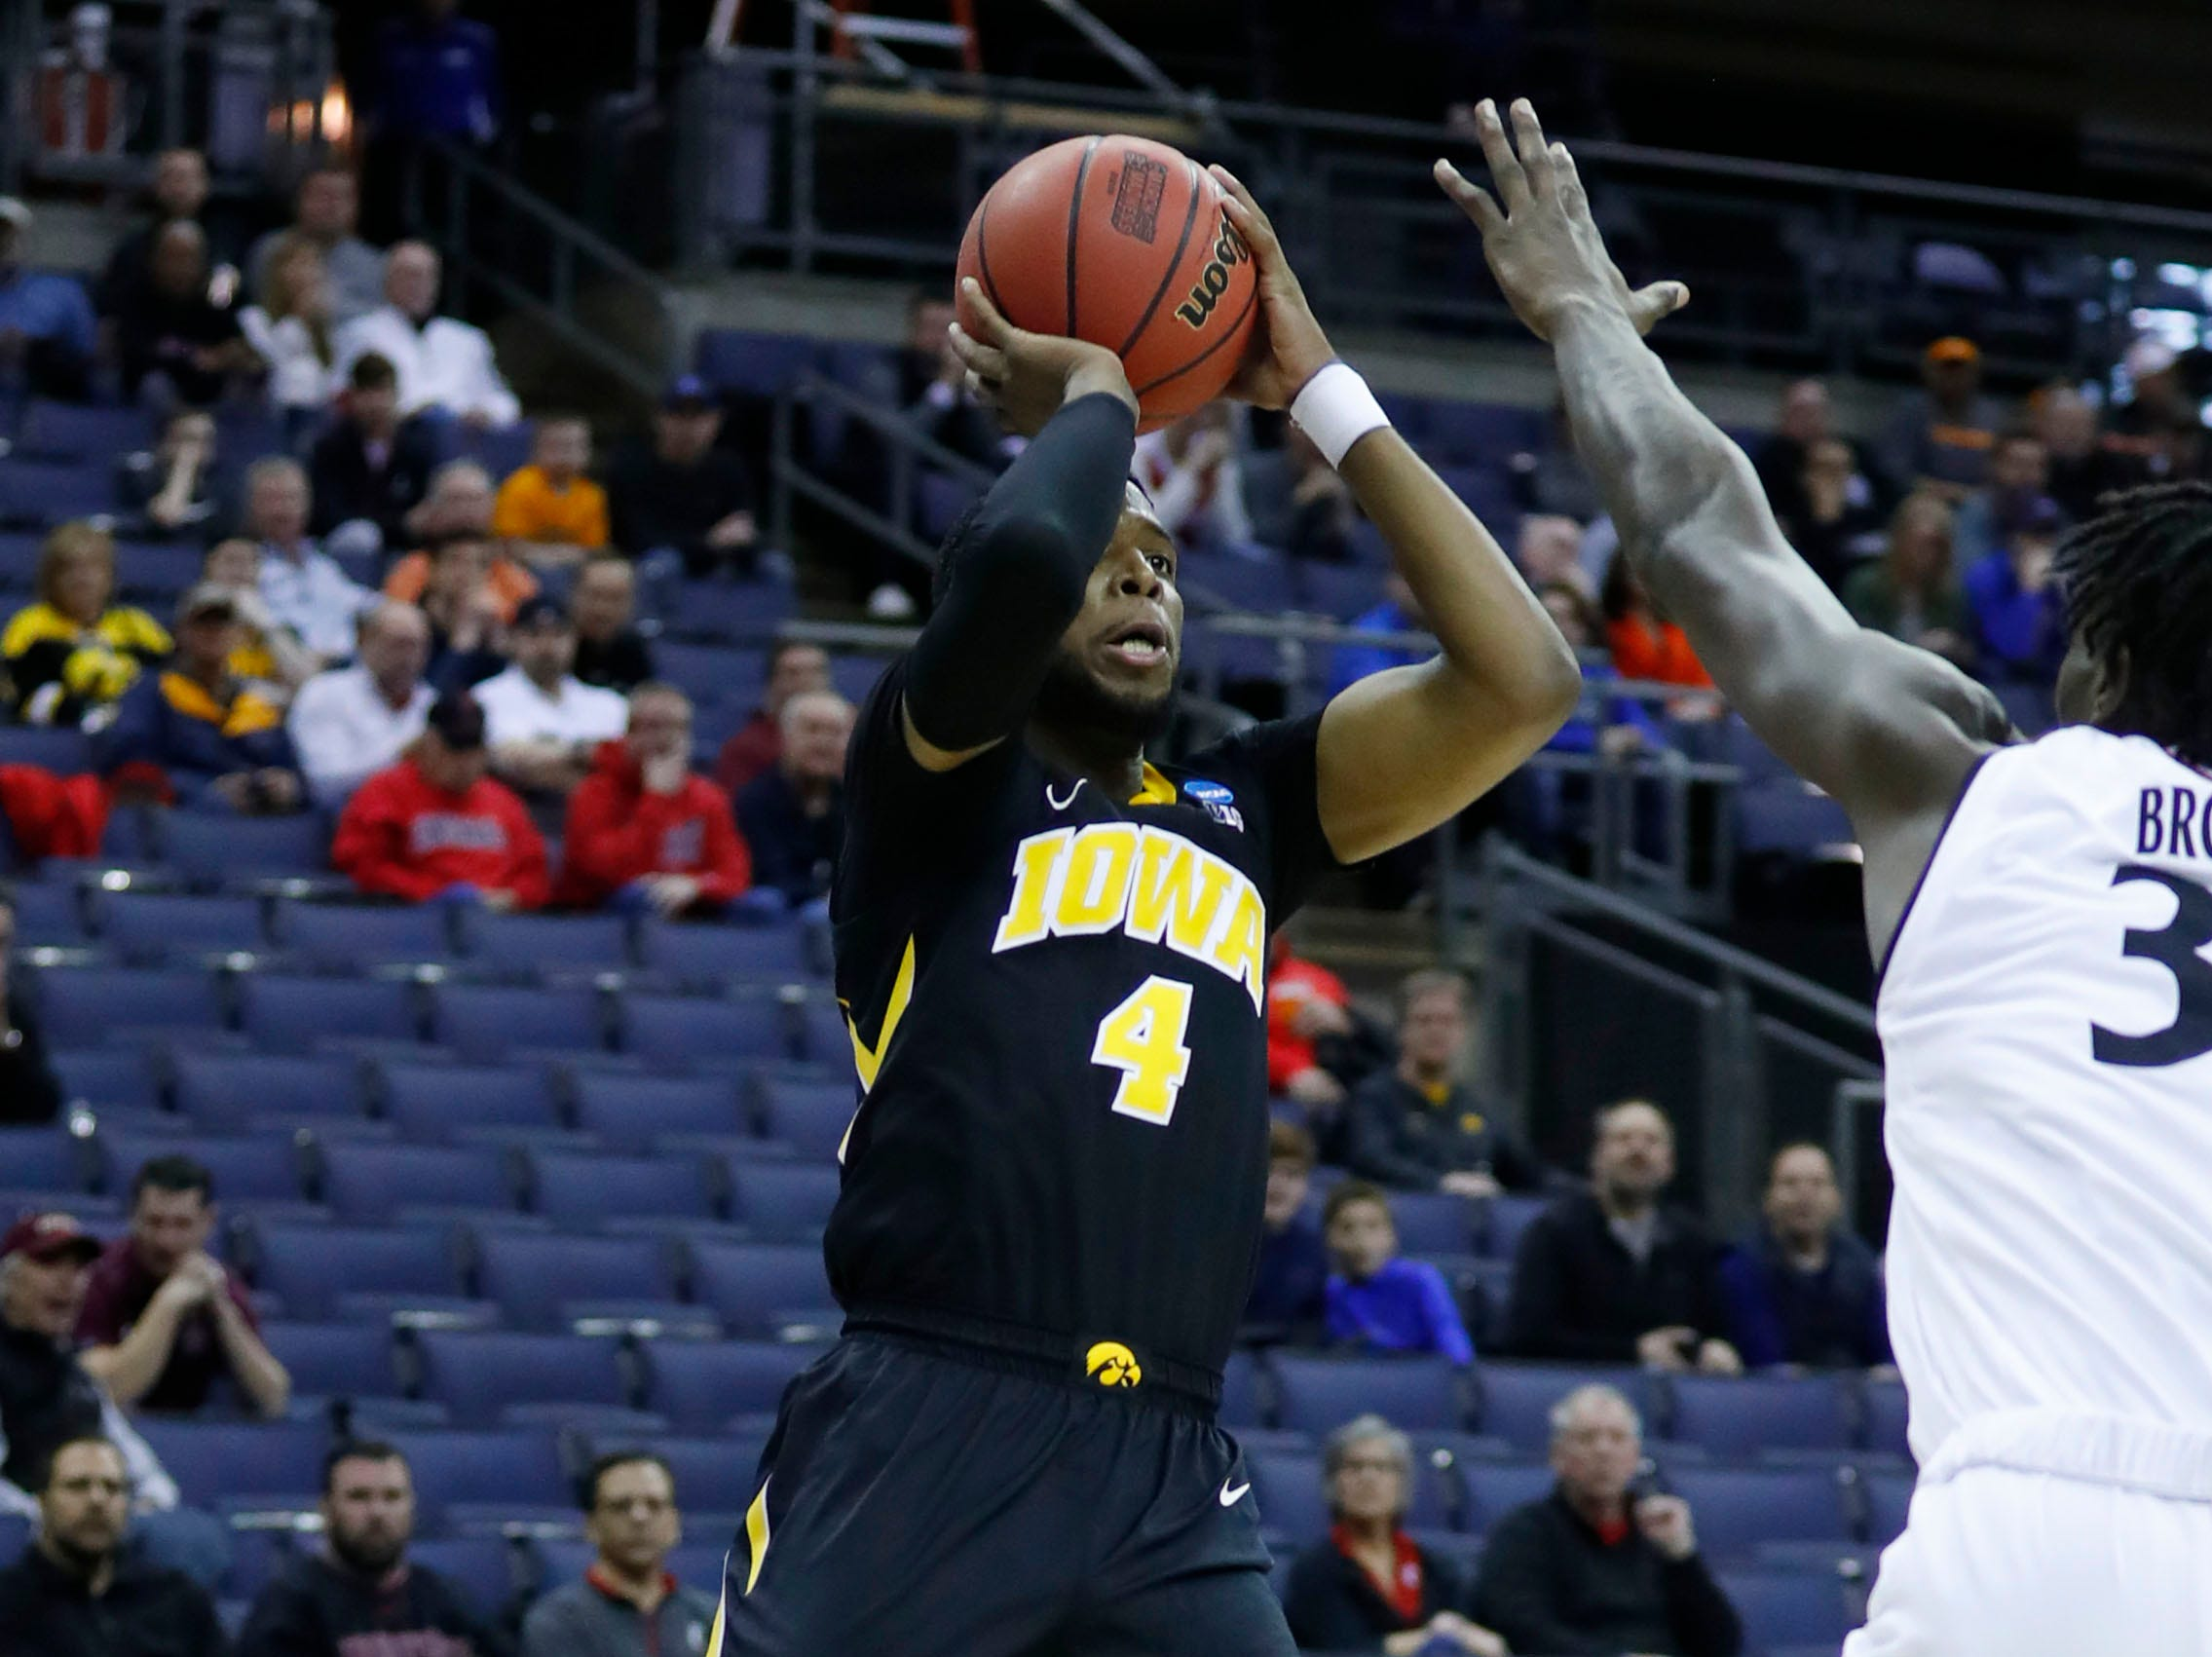 Mar 22, 2019; Columbus, OH, USA; Iowa Hawkeyes guard Isaiah Moss (4) shoots the ball over Cincinnati Bearcats center Nysier Brooks (33) in the first half in the first round of the 2019 NCAA Tournament at Nationwide Arena. Mandatory Credit: Rick Osentoski-USA TODAY Sports